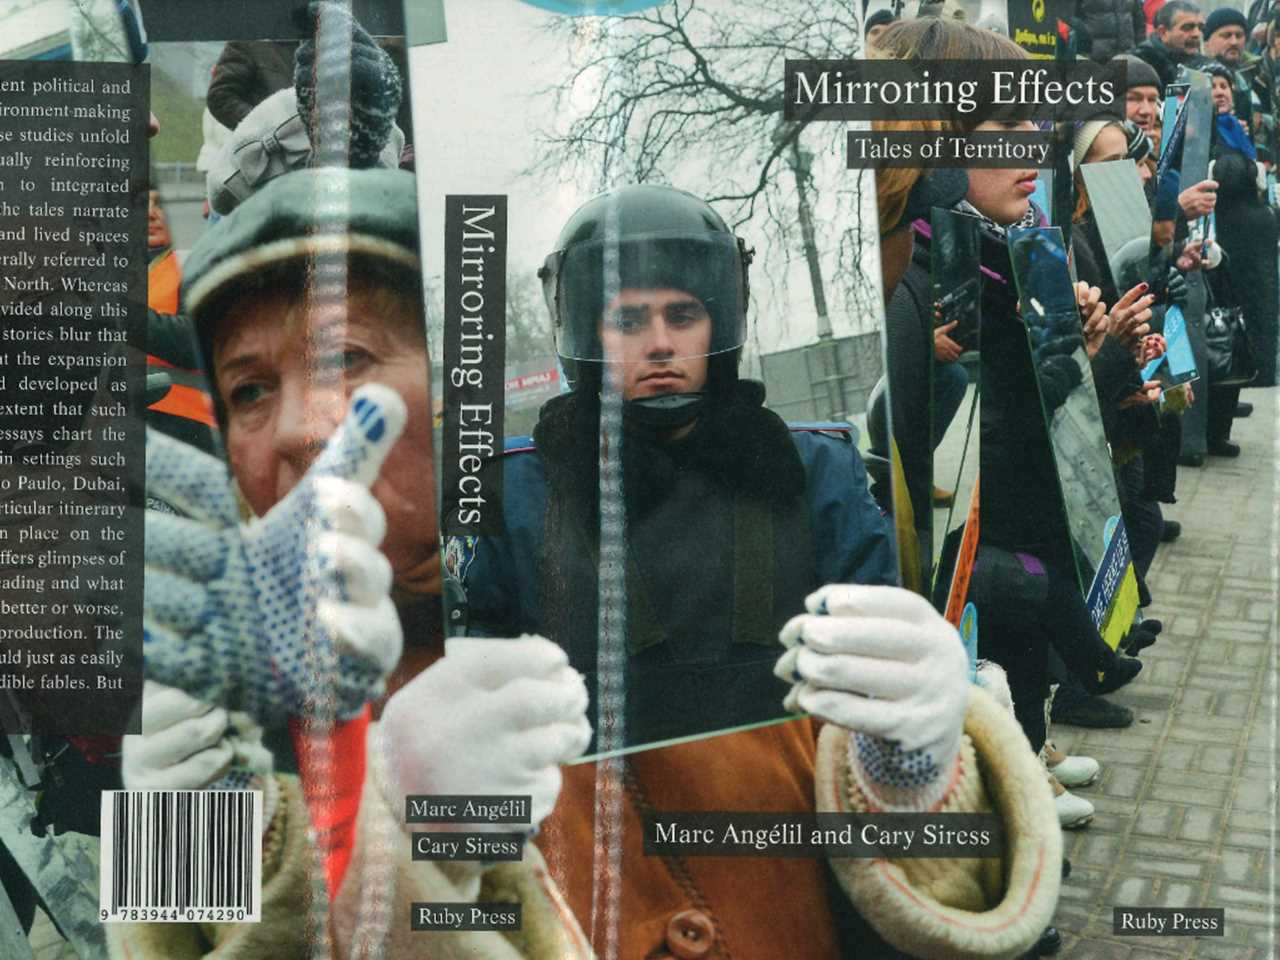 Mirroring Effects – a book inspired by topics and locations of LafargeHolcim Forums